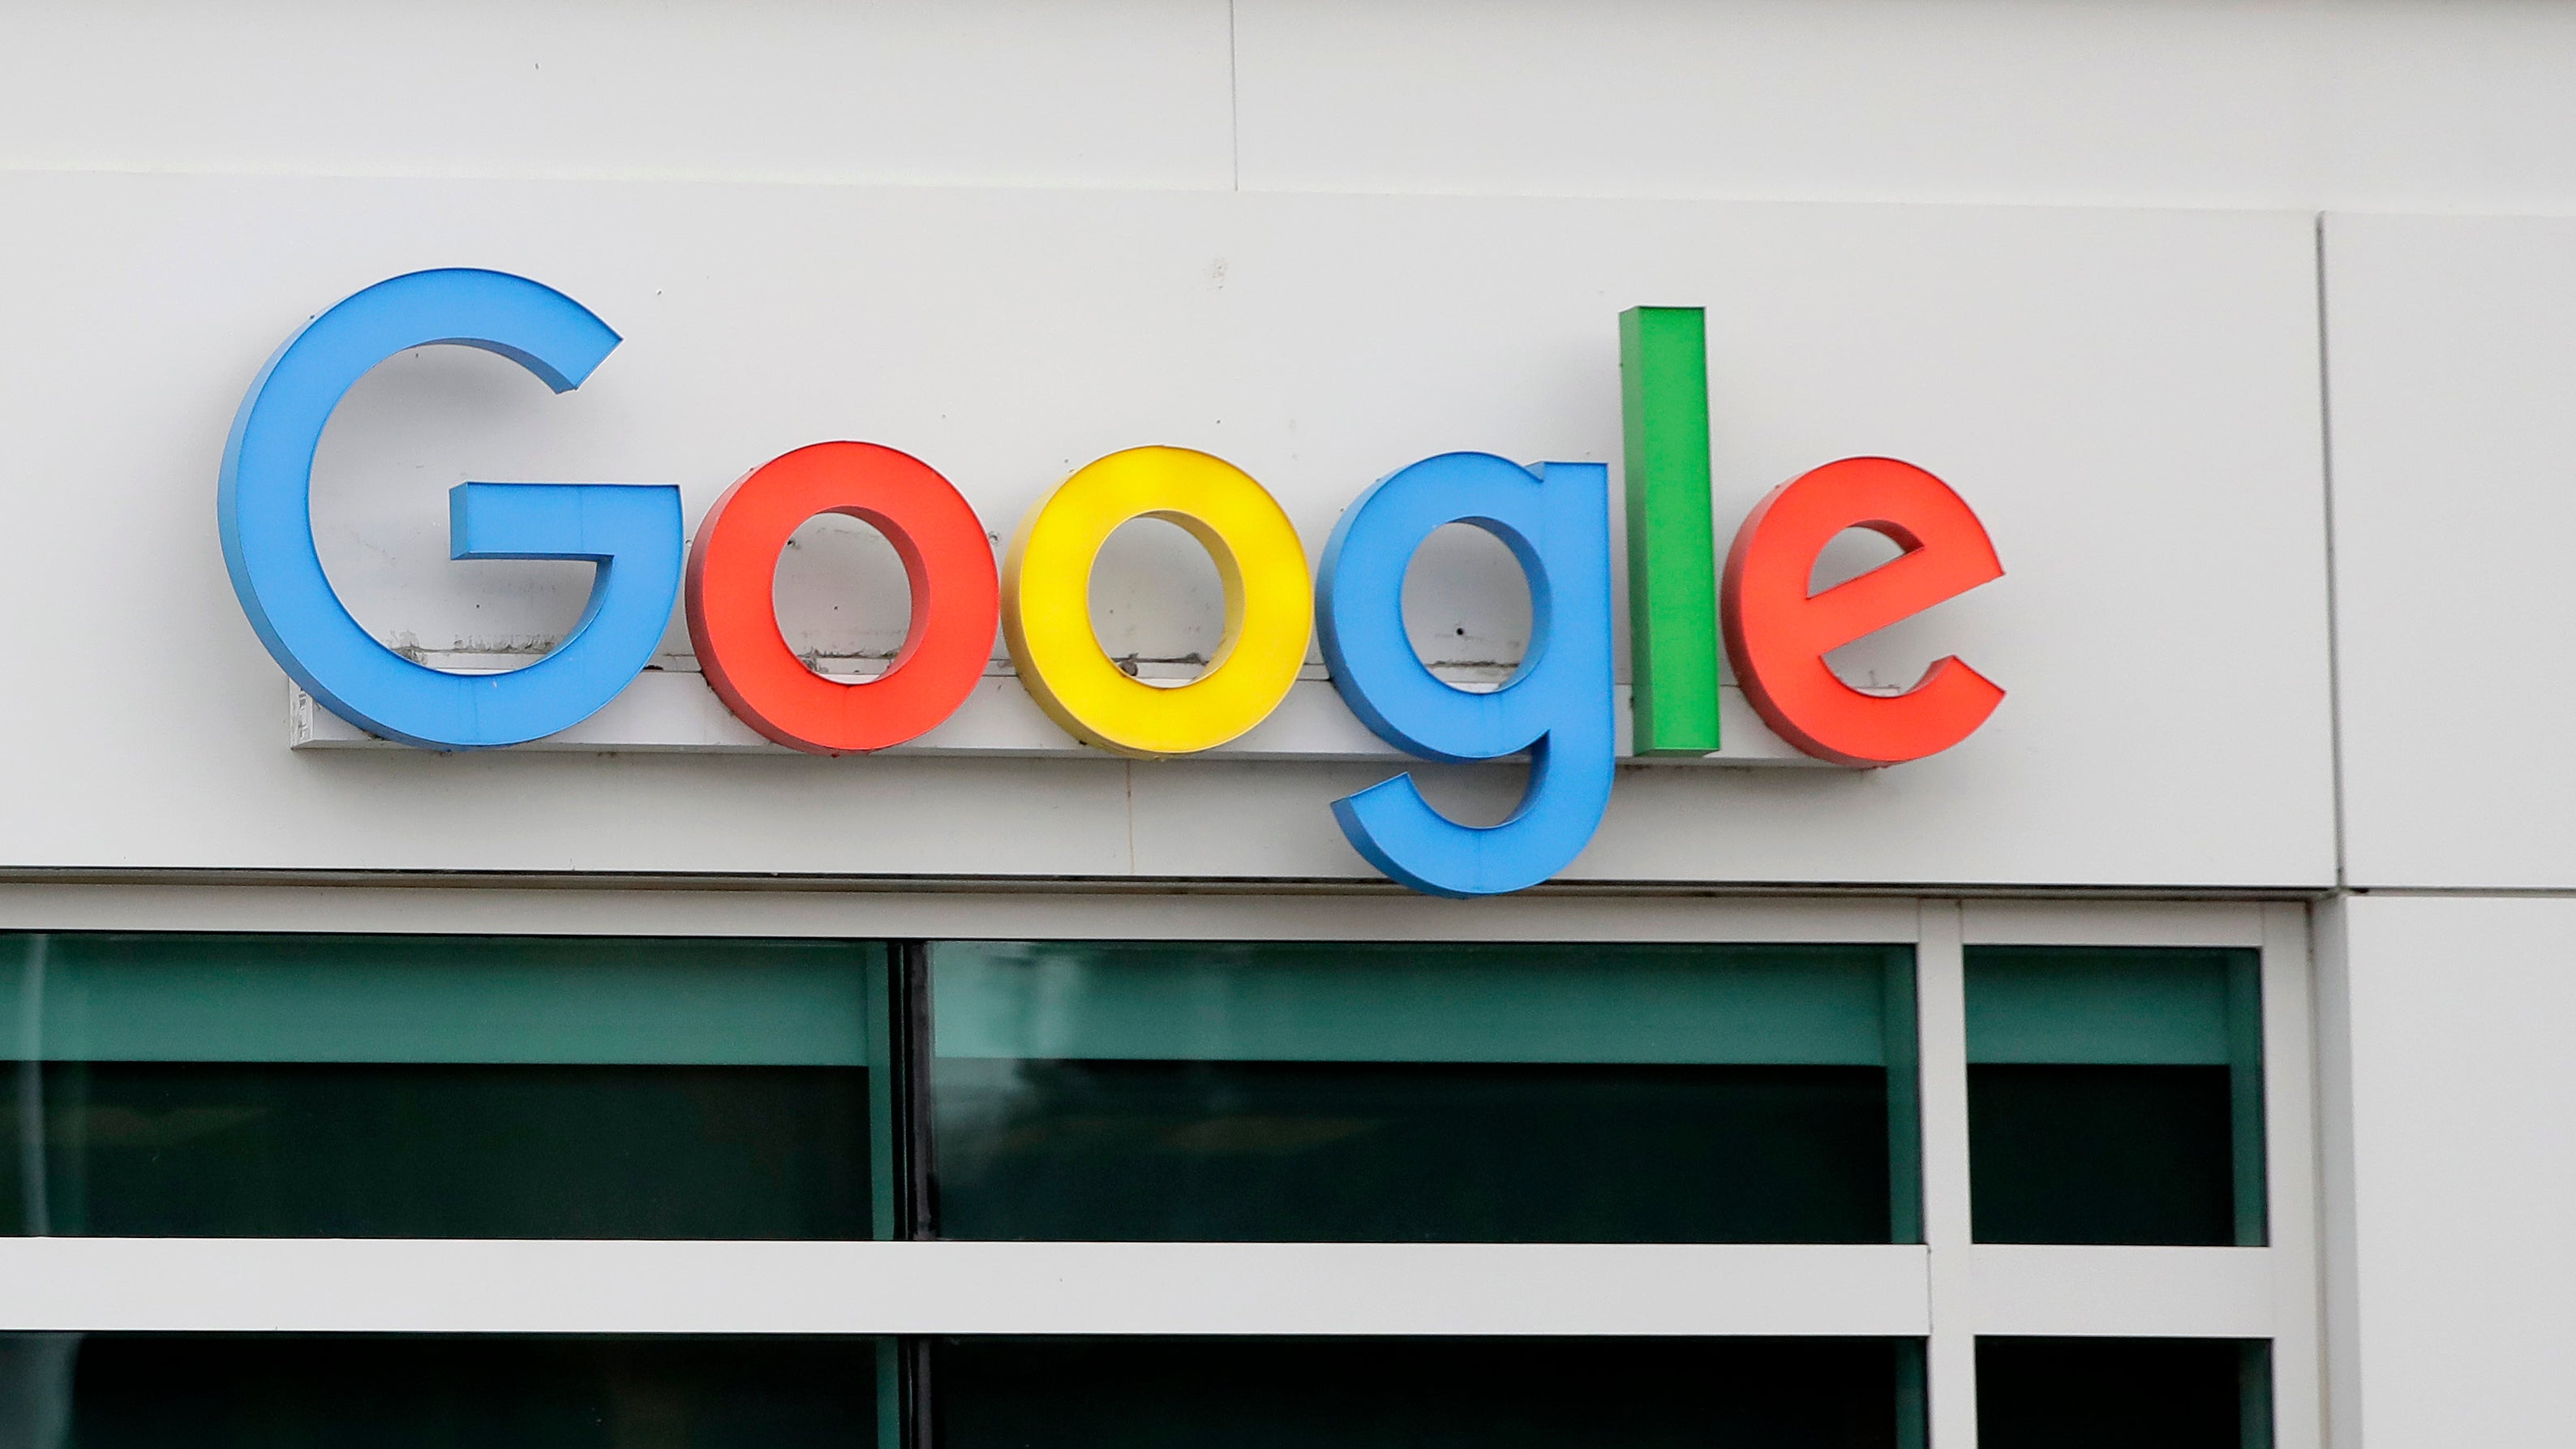 Mysterious Re-Routing Of Google Traffic Could Have Been An Attack, Or Just A Glitch